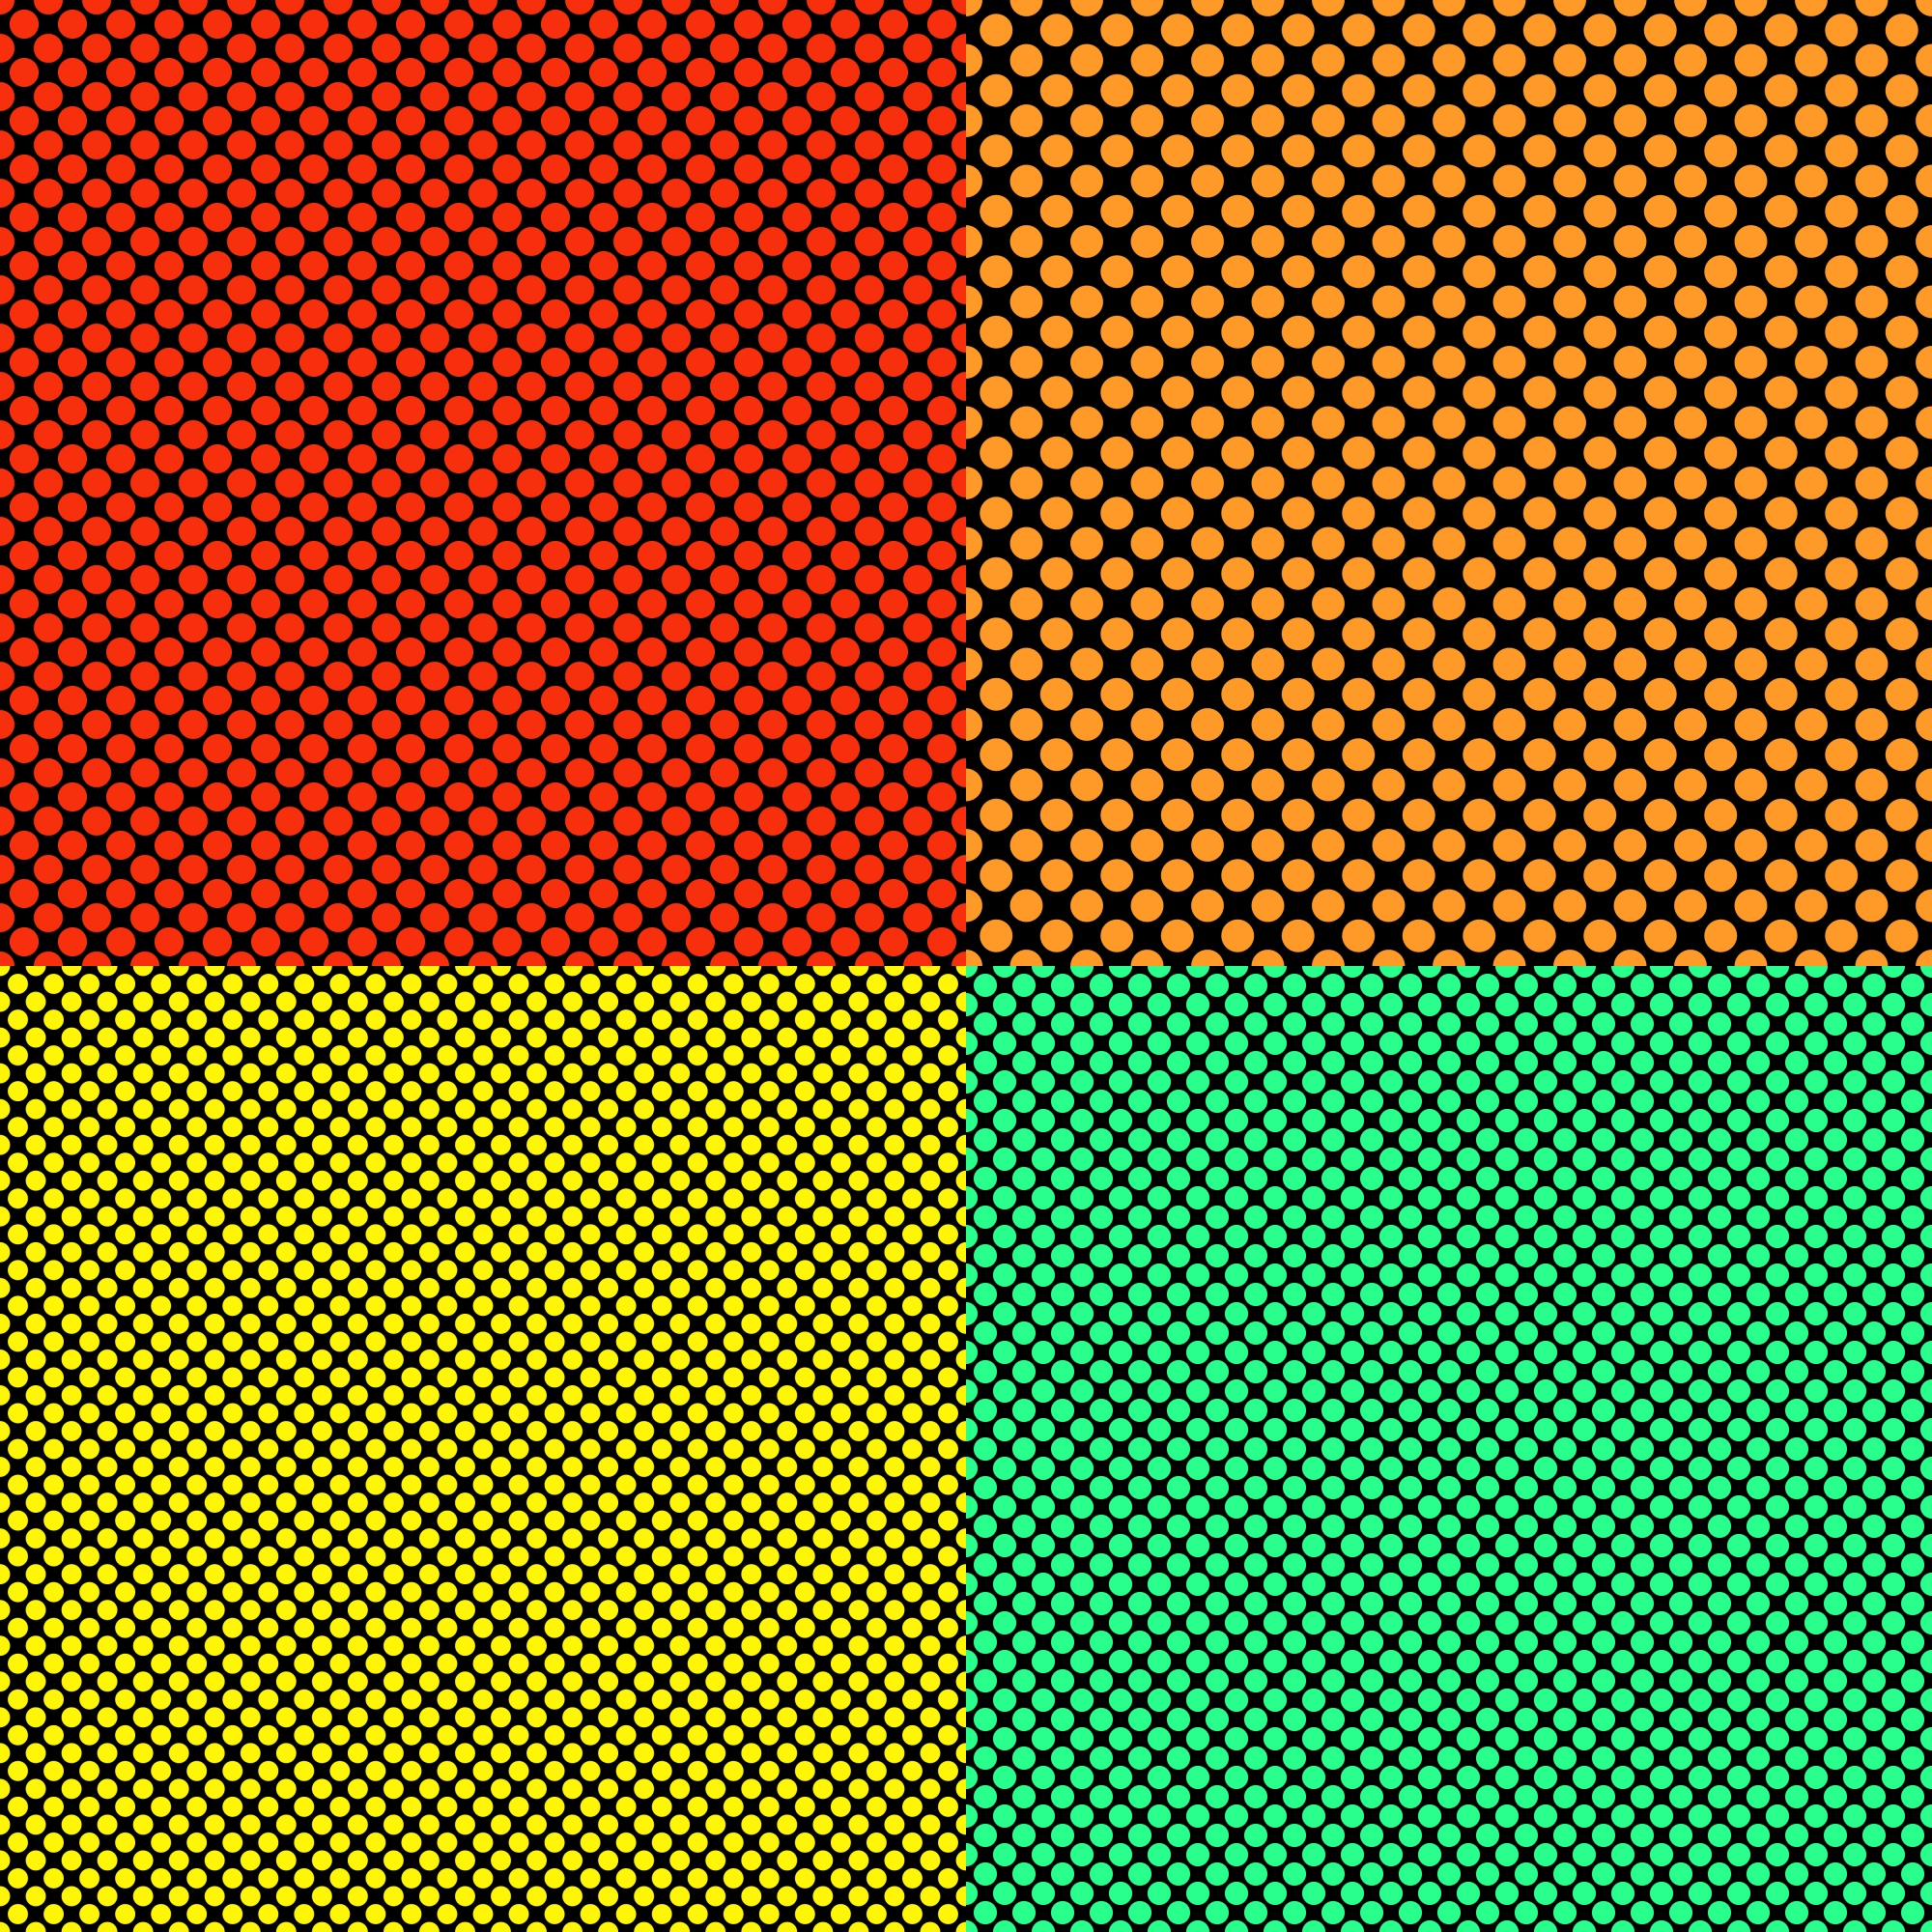 Simple seamless dot pattern background template set - graphics from colored circles